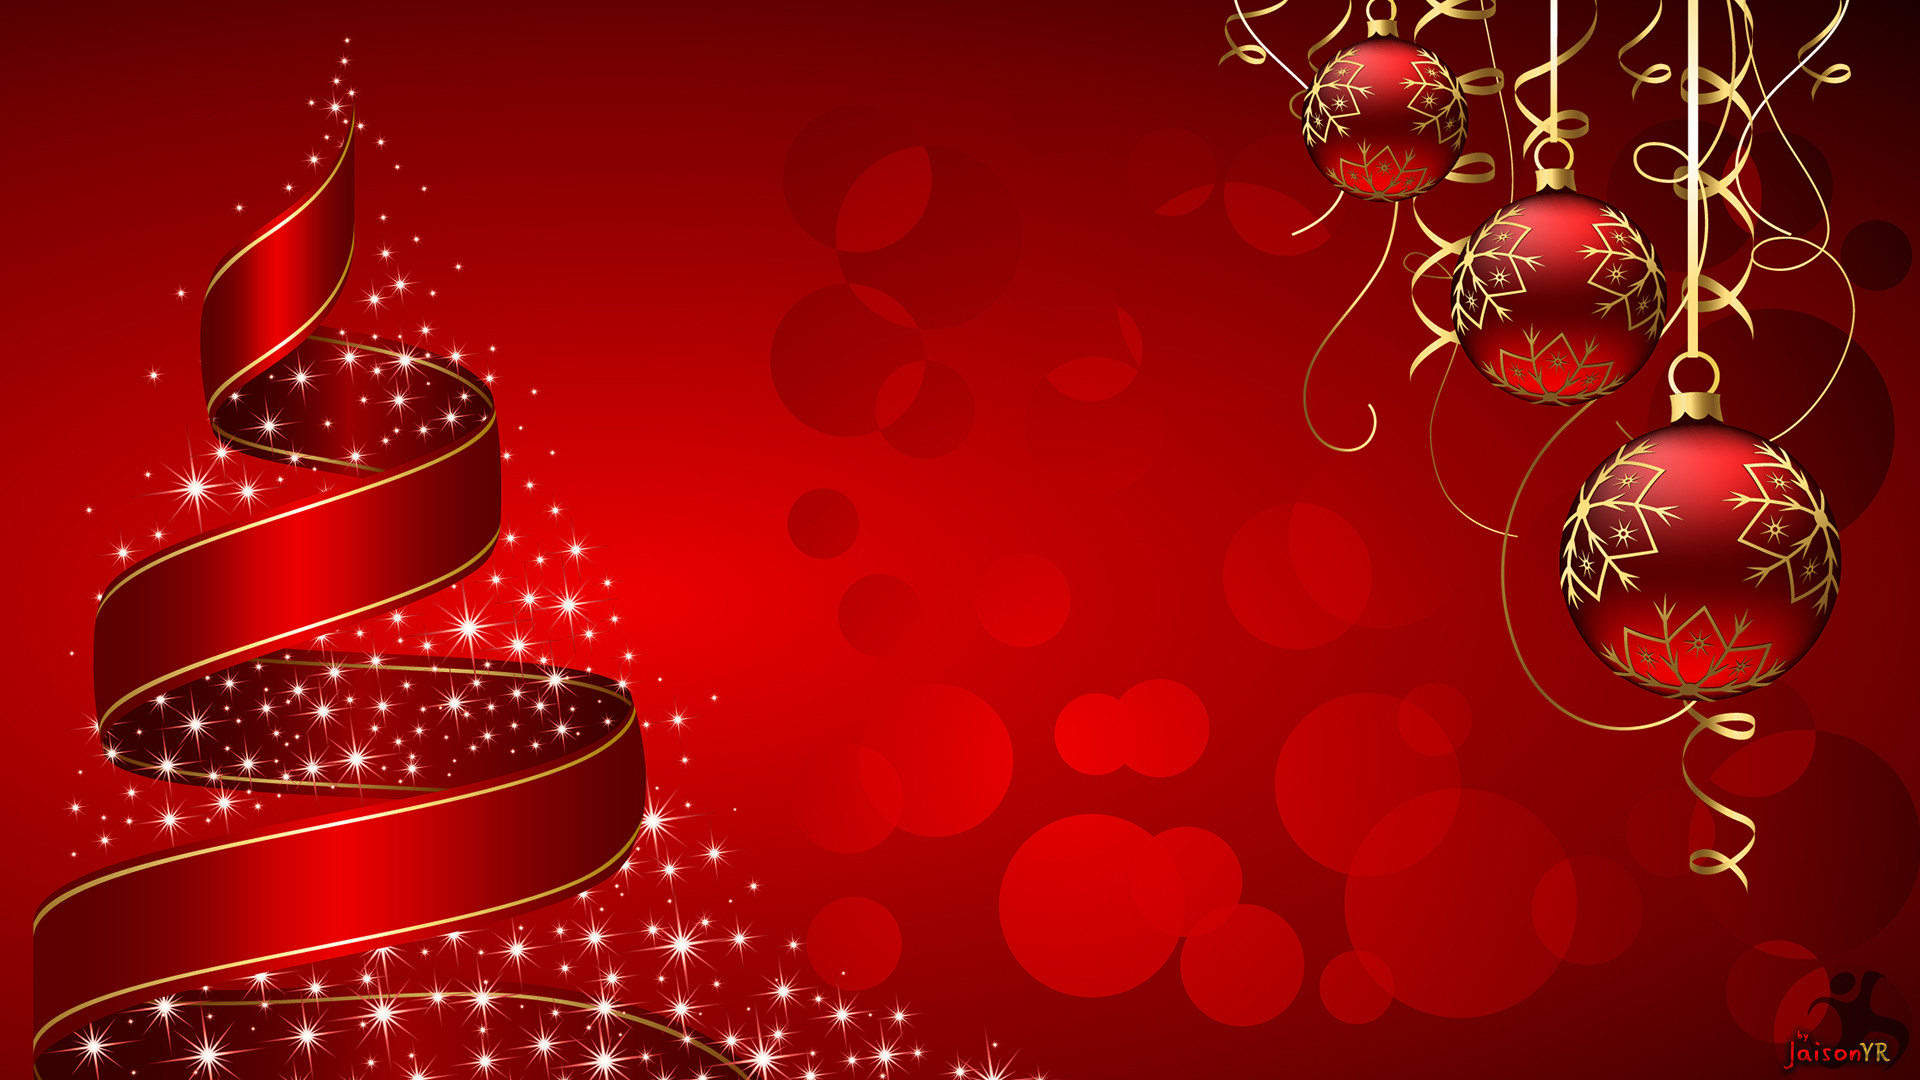 Christmas Background Images #3513